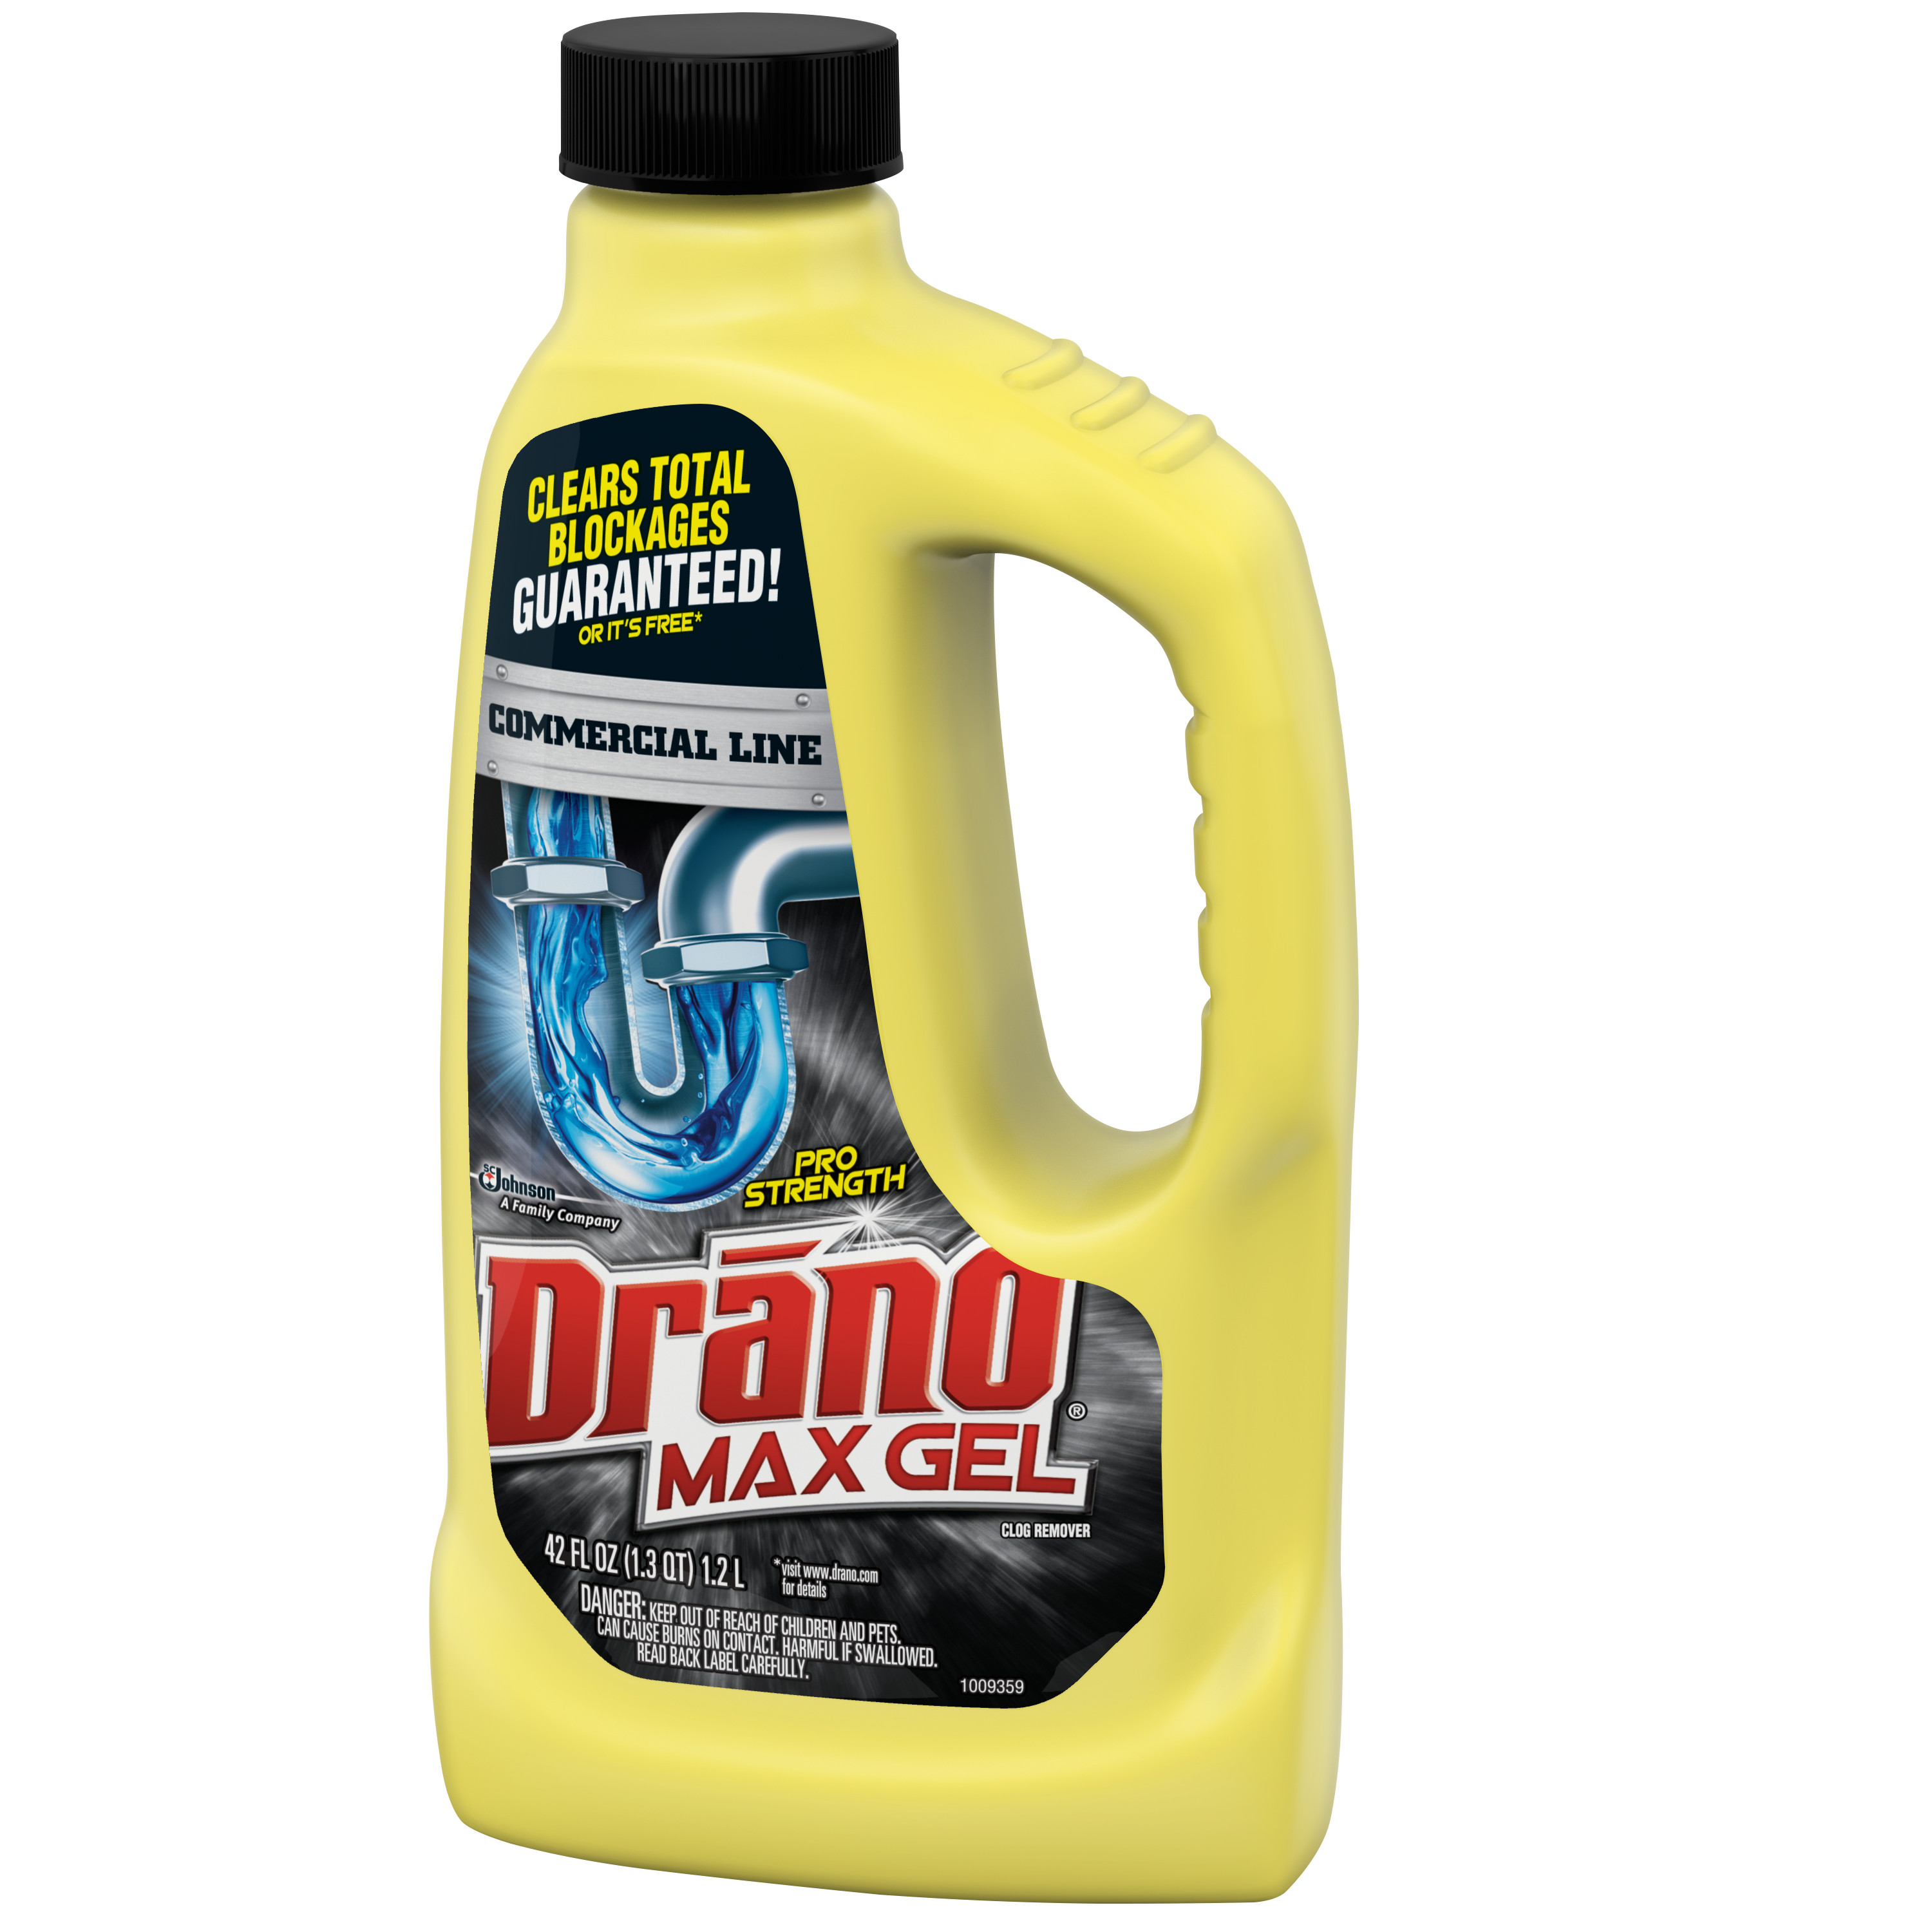 home and interior at bathtub best budget for awesome tips drano you fancy can in a on use style cool